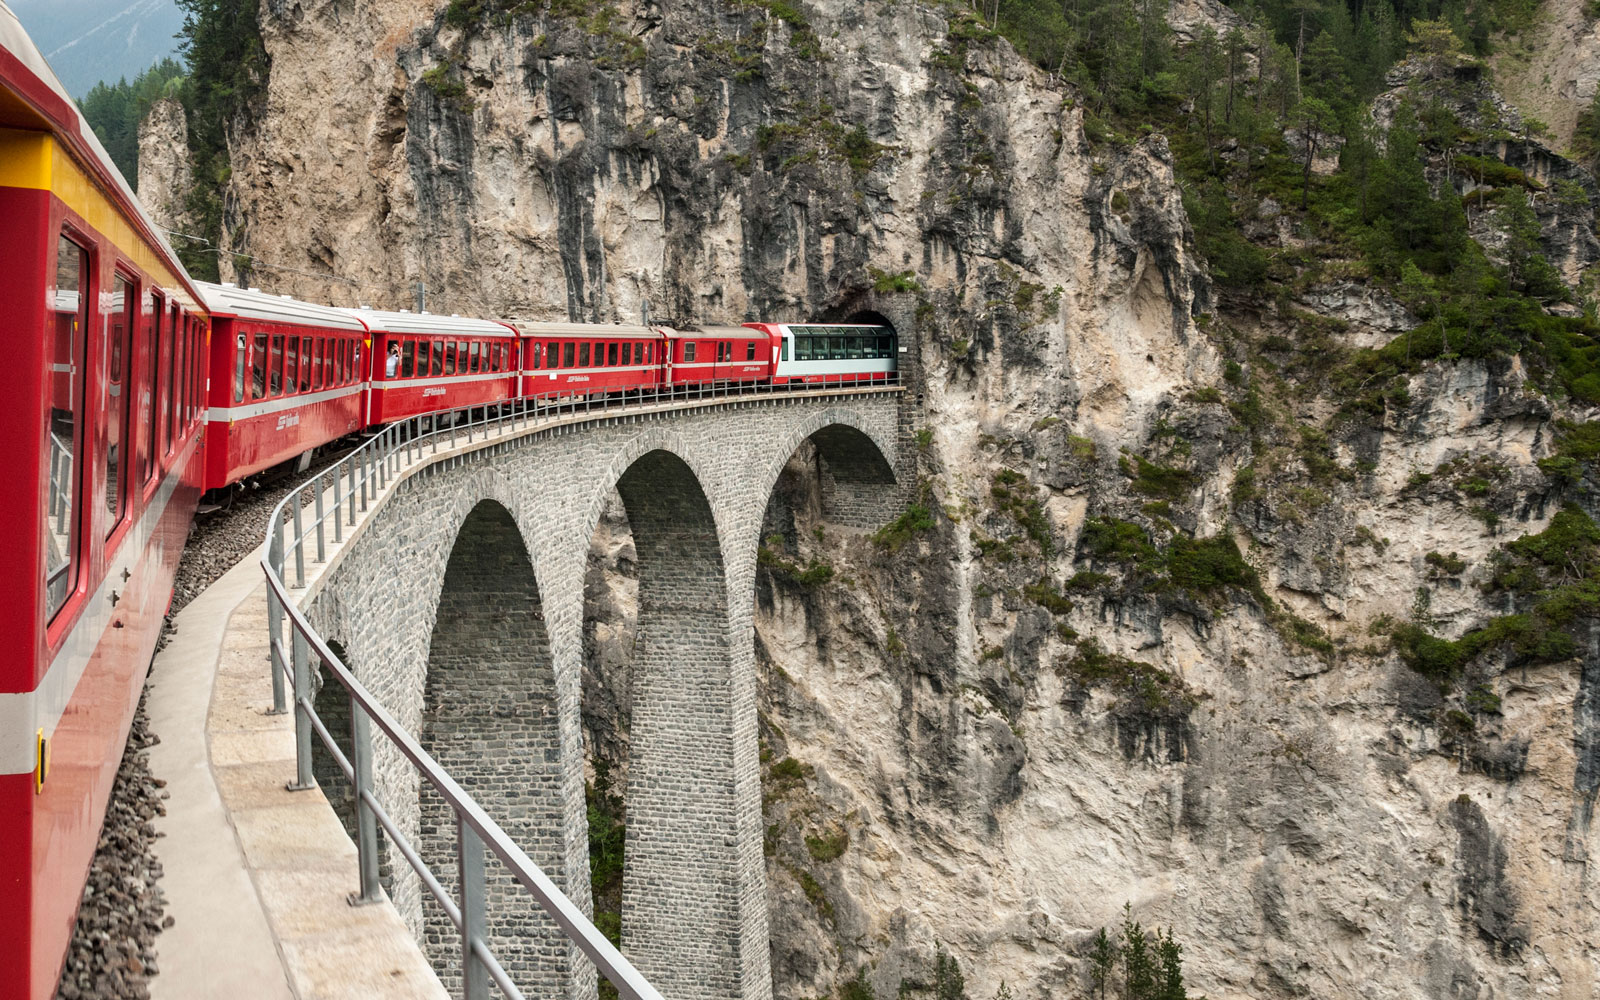 The Glacier Express: The 'Slowest Express Train in the World' Lets You Enjoy Switzerland's Breathtaking Views in One Relaxing Journey